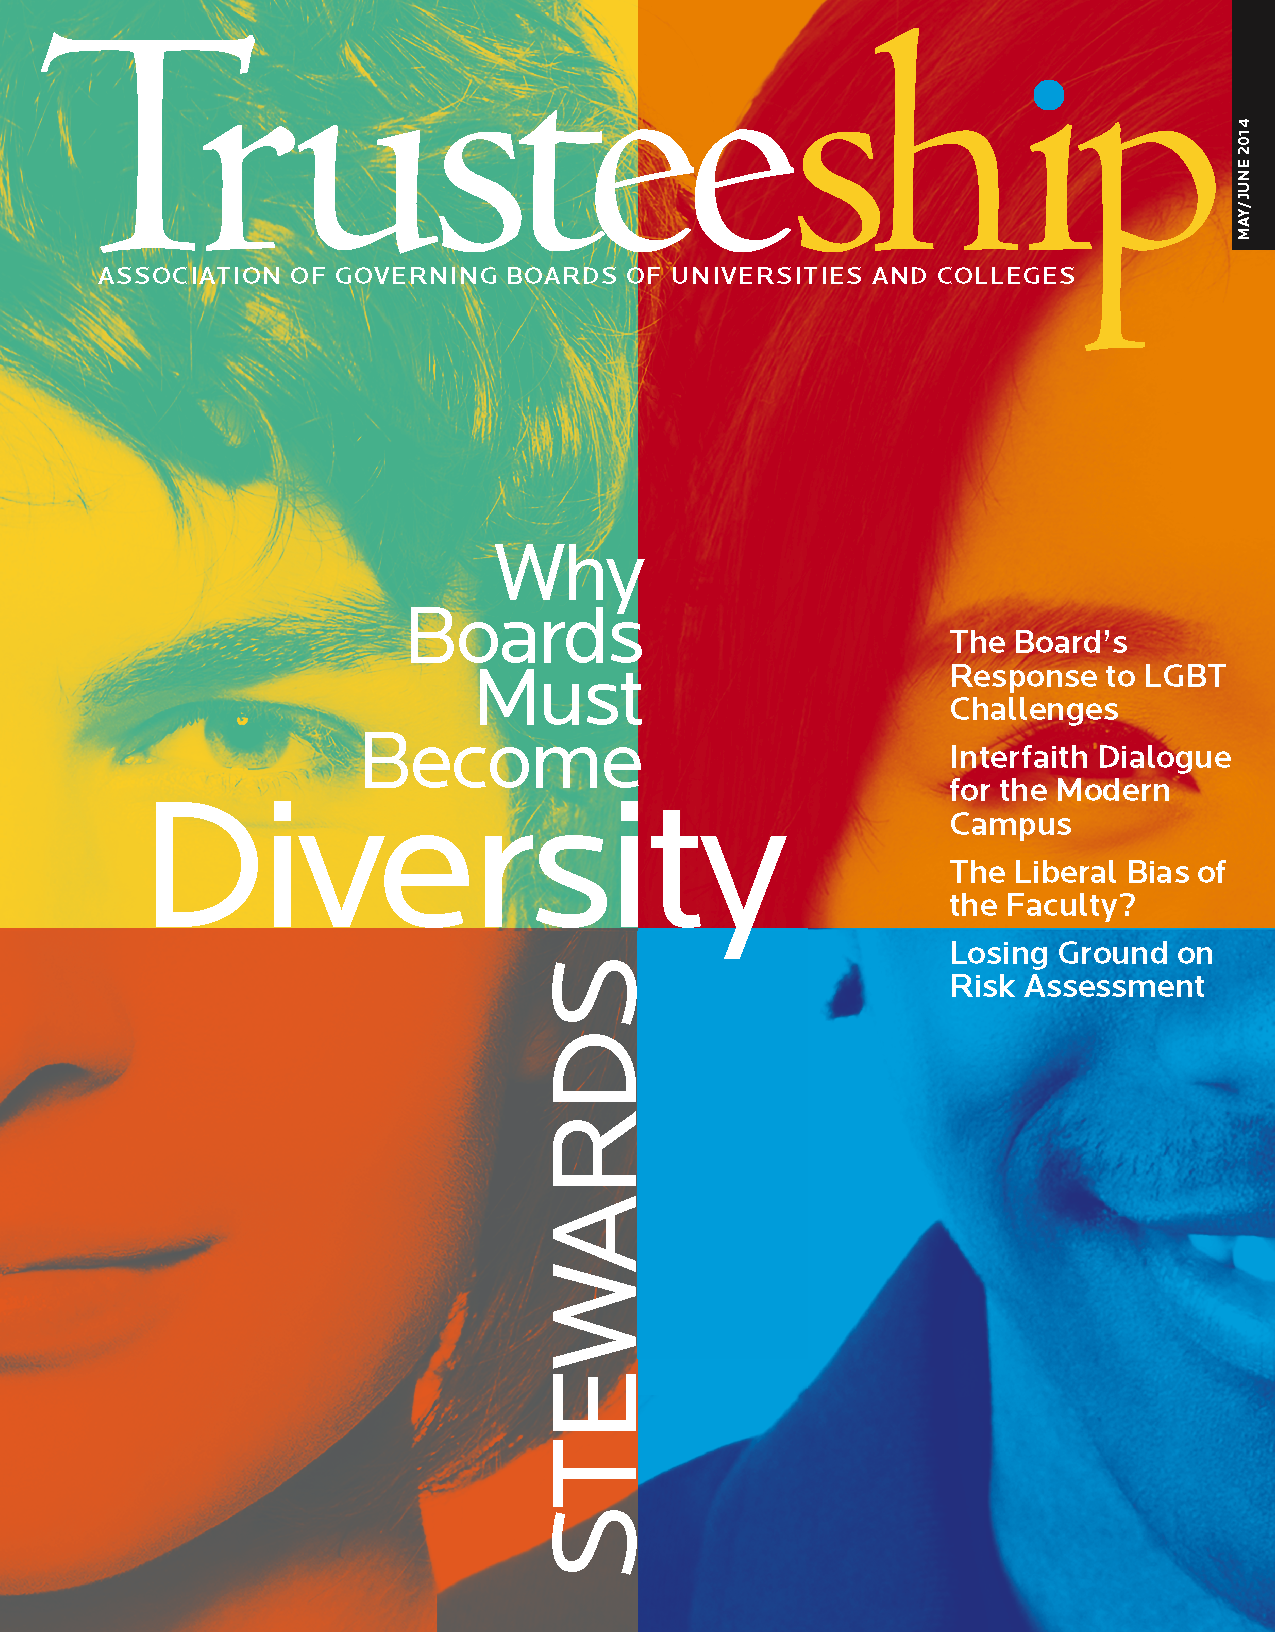 Trusteeship: Why Boards Must Become Diversity Stewards, May/June 2014